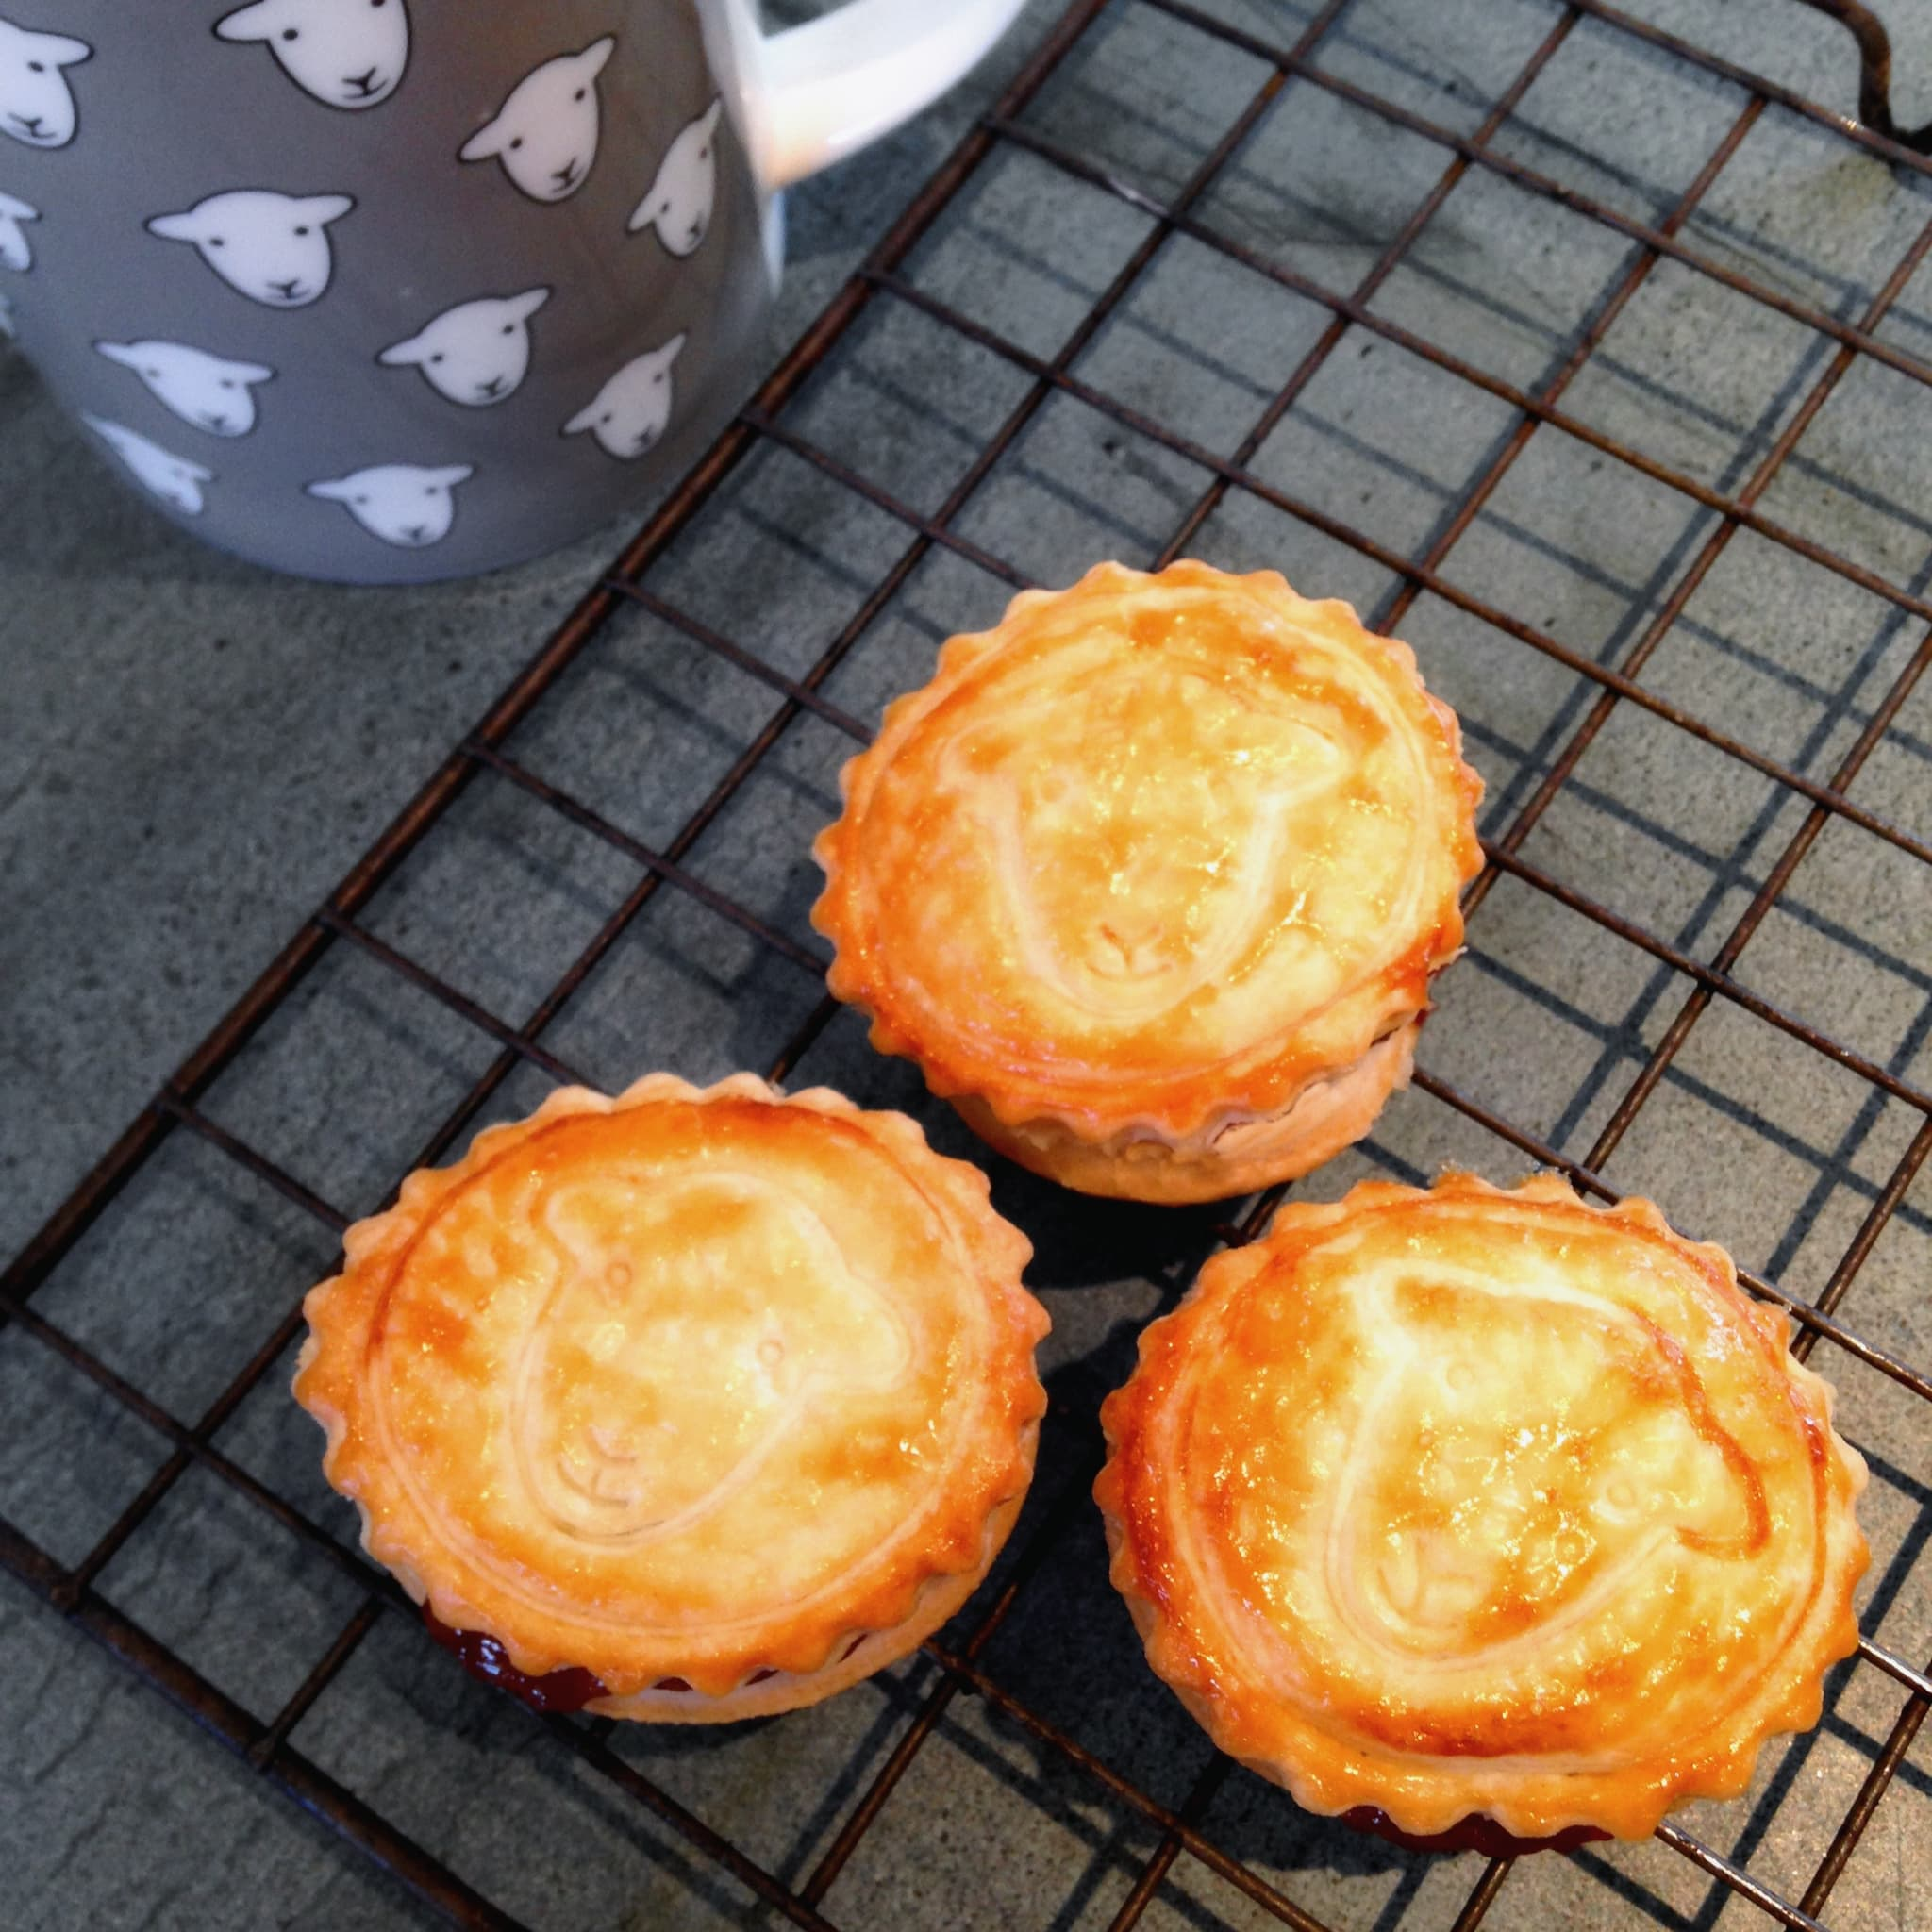 Have a brew and enjoy your Herdy mince pies